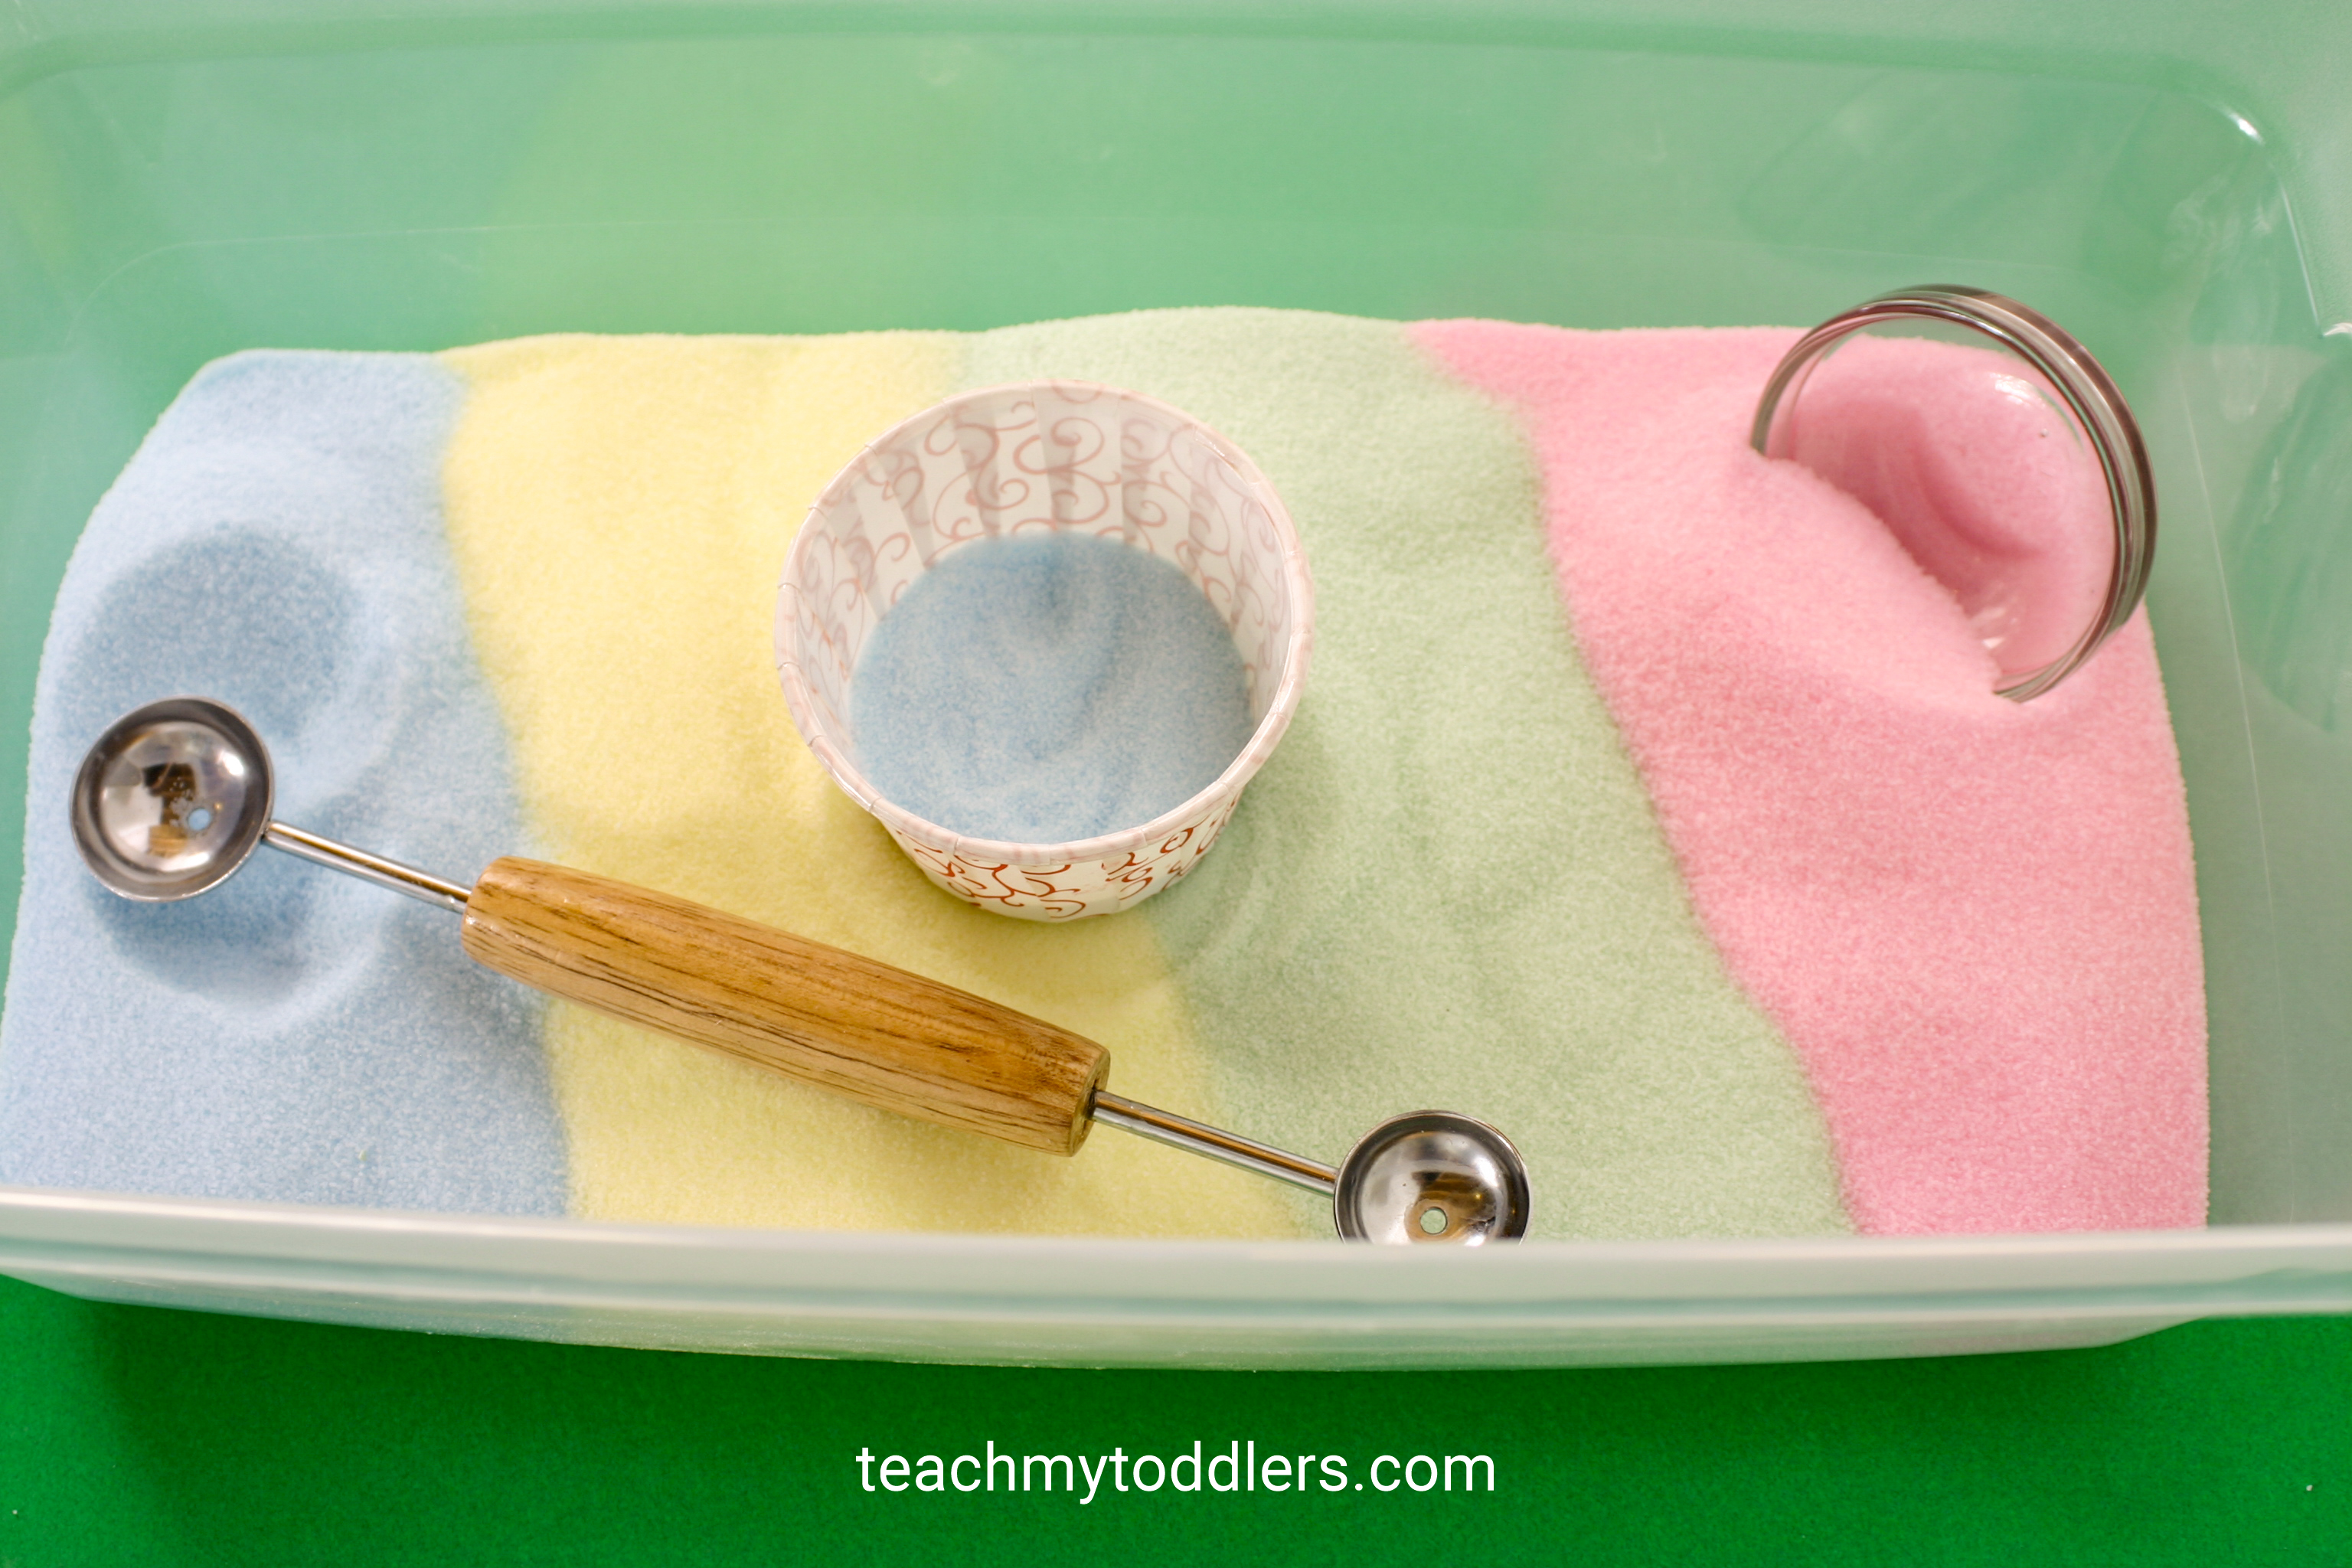 Discover how to make fun diy colored salt for your teach my toddler projects